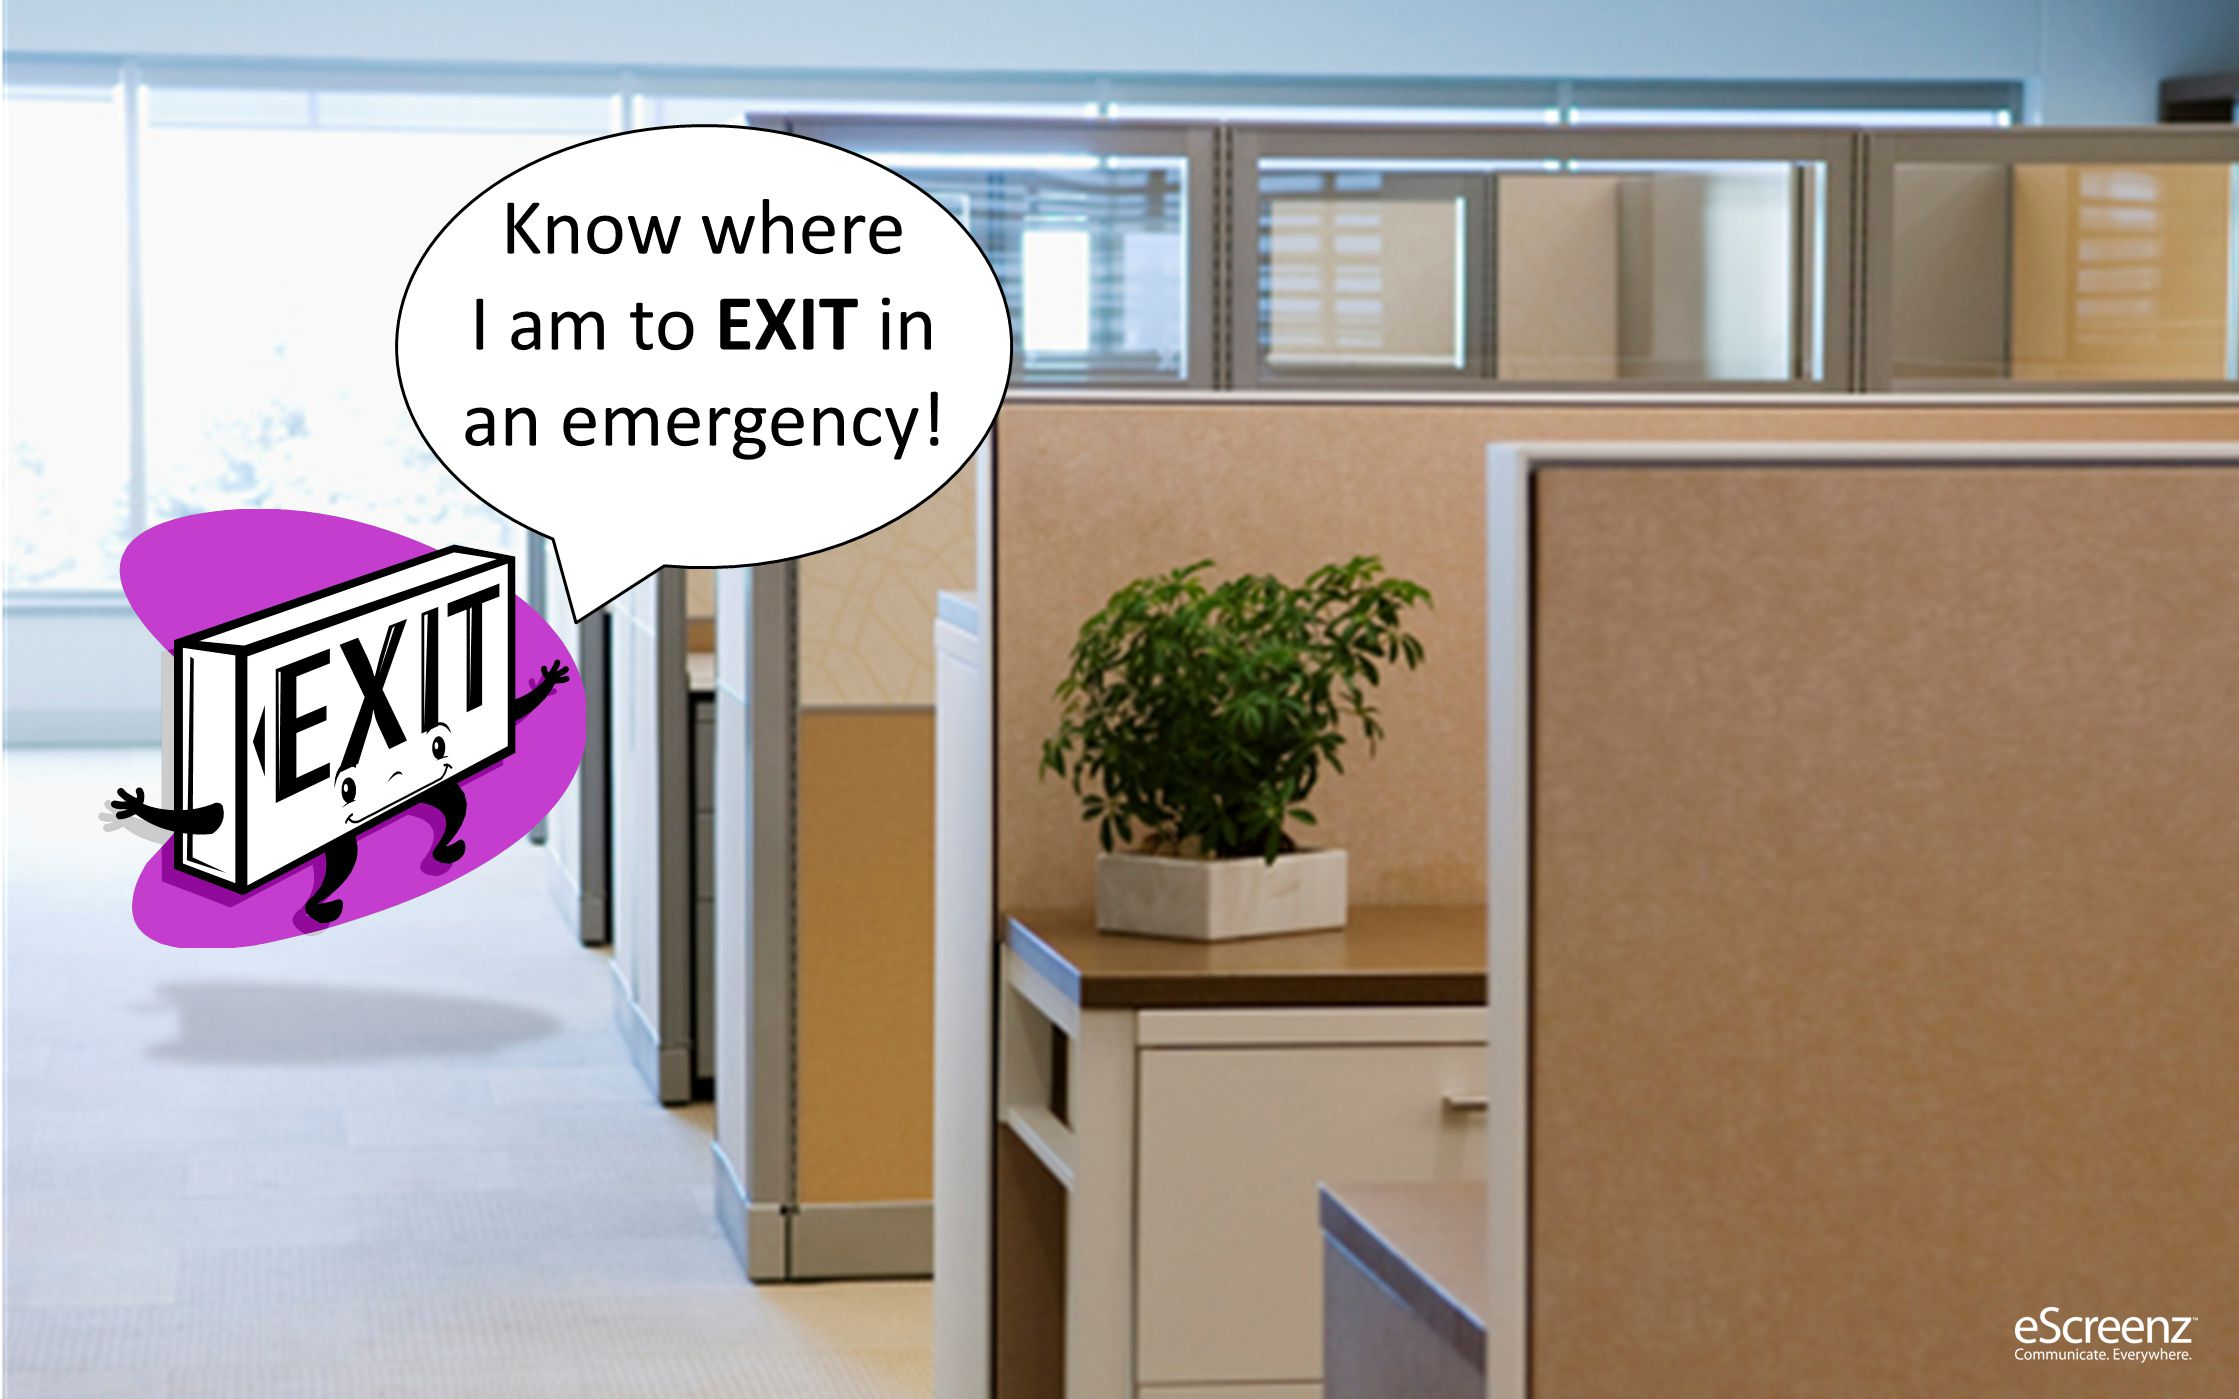 Know where I am to EXIT in an emergency!